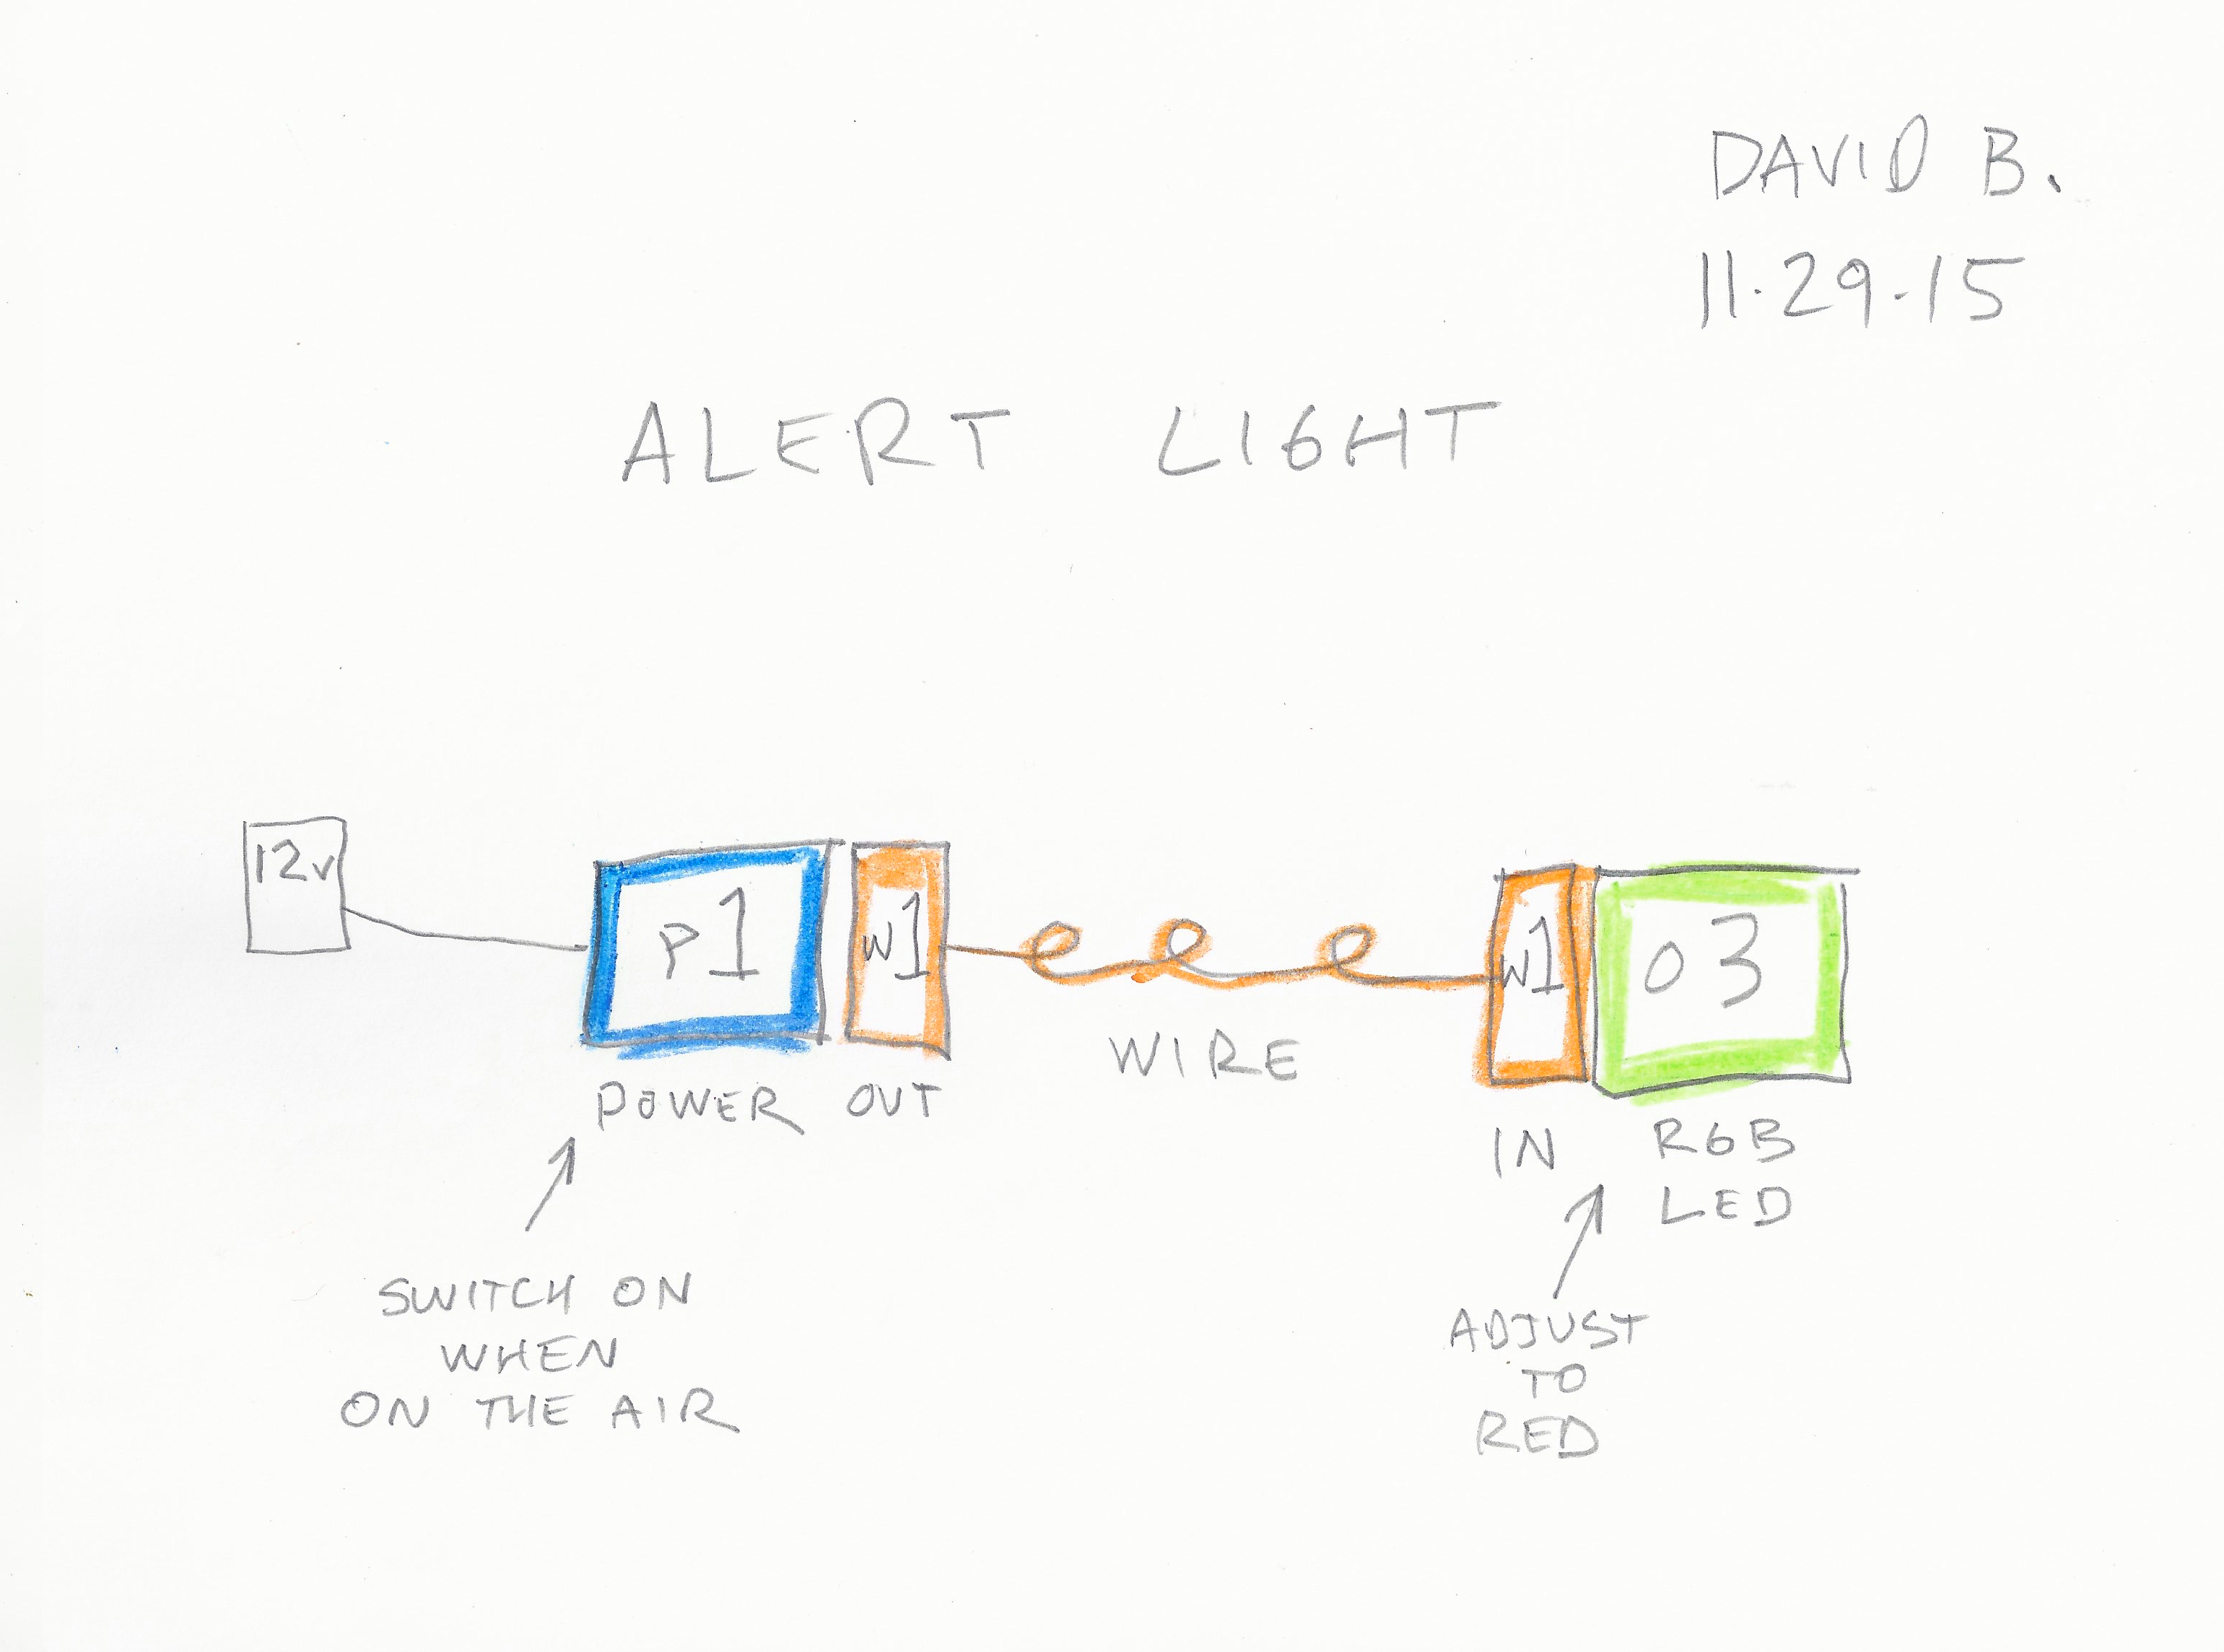 introduction to schematic diagrams with littlebits a littlebits introduction to schematic diagrams with littlebits a littlebits [ 3081 x 2289 Pixel ]